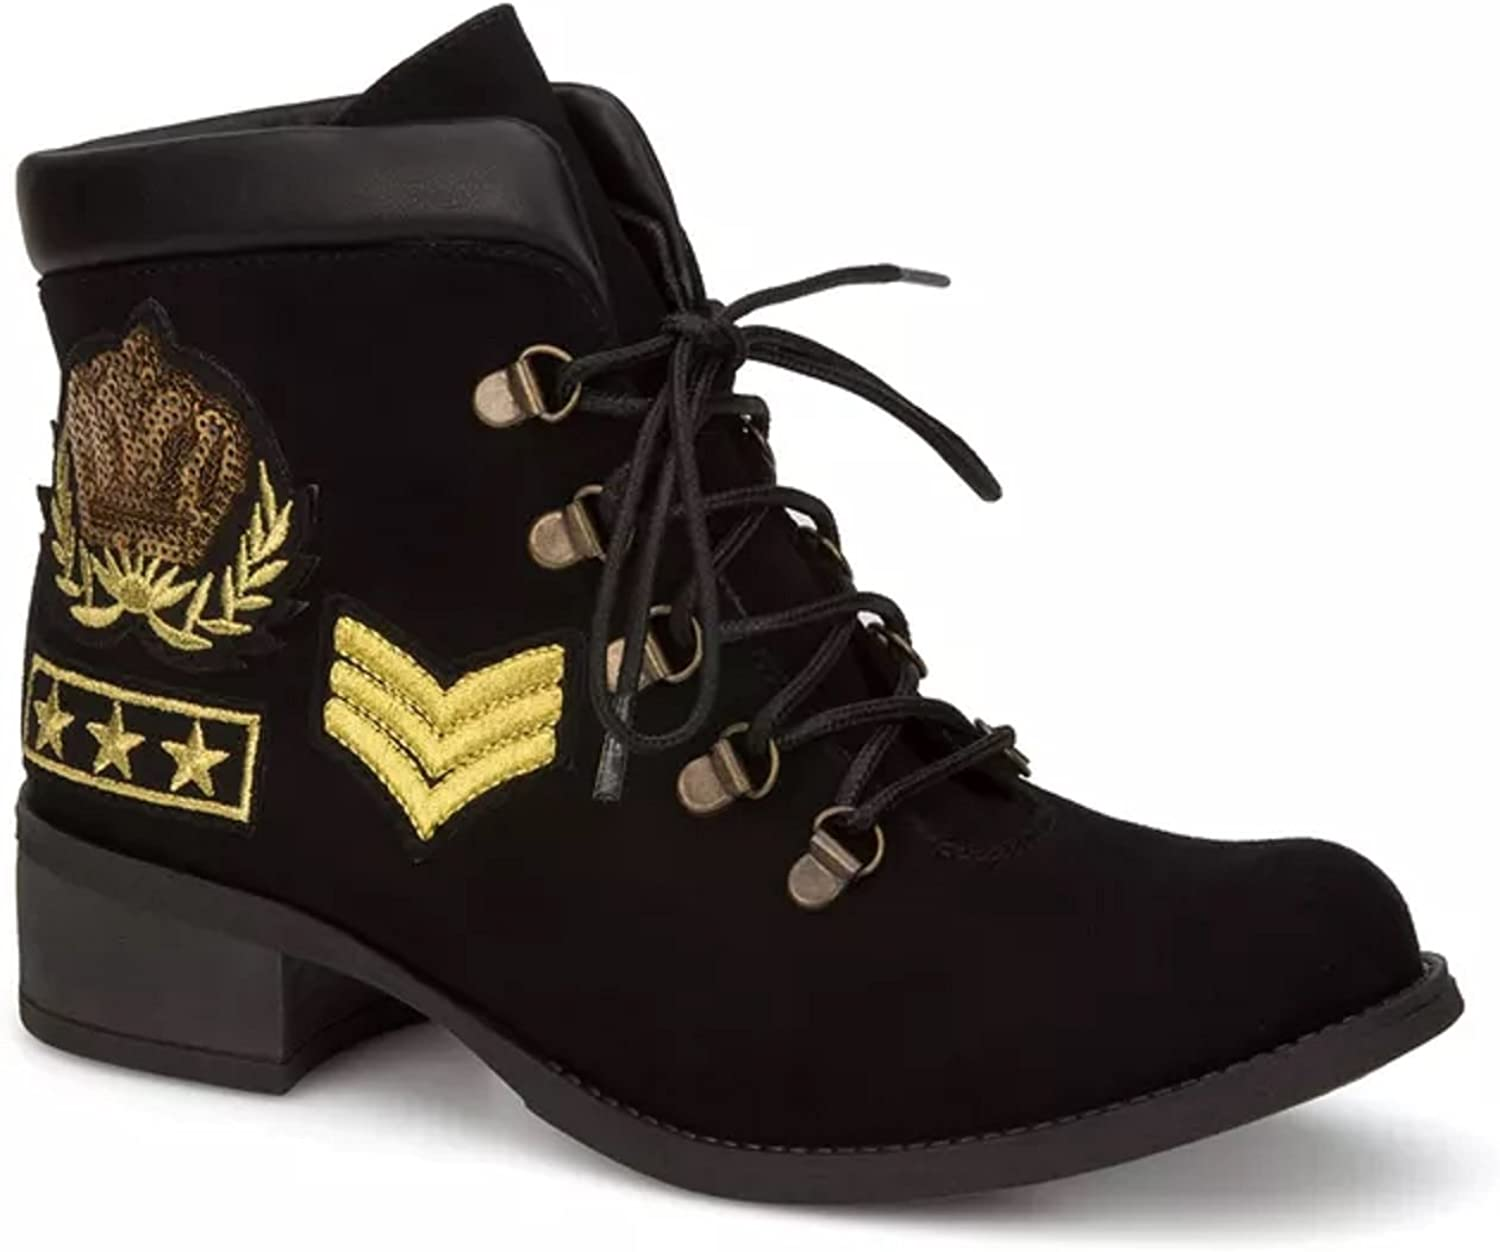 Andrea shoes Black Velvet and Embroidered Fashion Women's Combat Low Boots